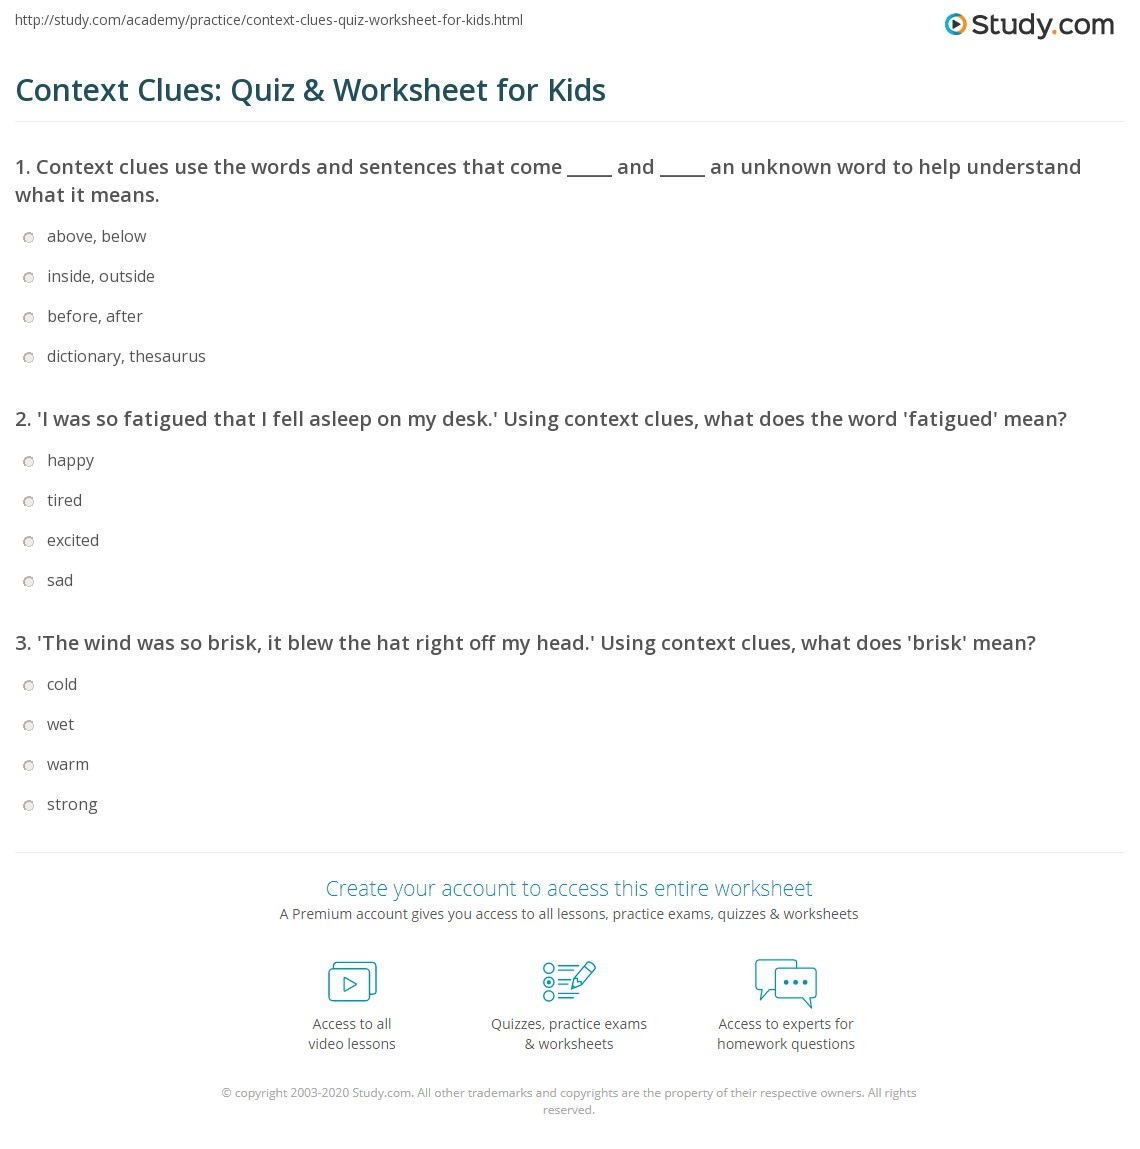 worksheet Worksheet Context Clues context clues quiz worksheet for kids study com print lesson definition examples worksheet